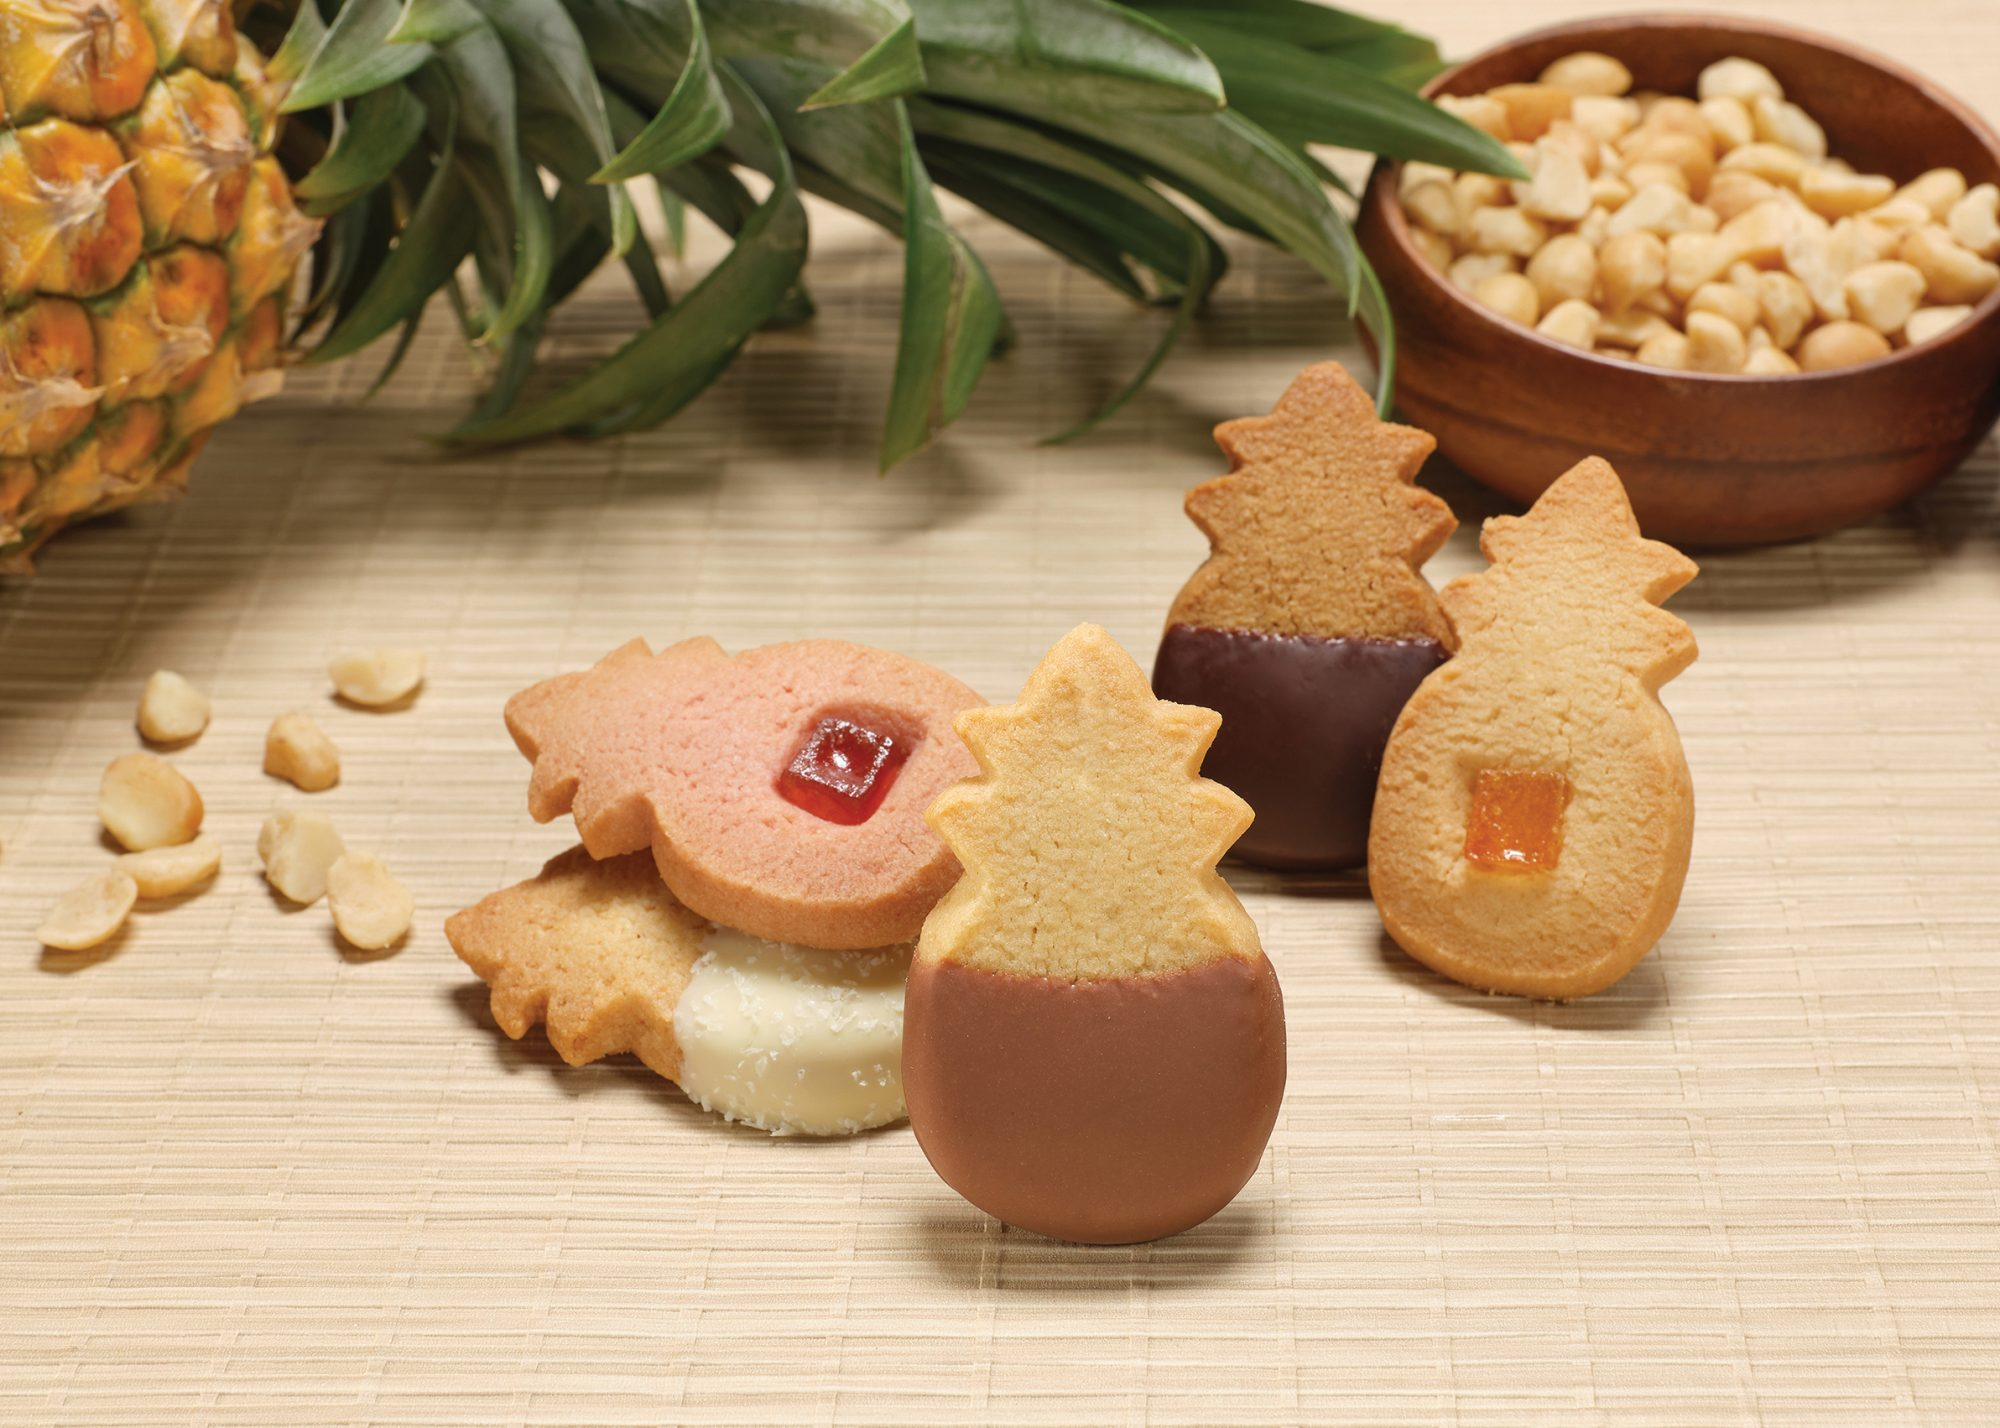 Assortment of cookies in front of a pineapple and macadamia nuts